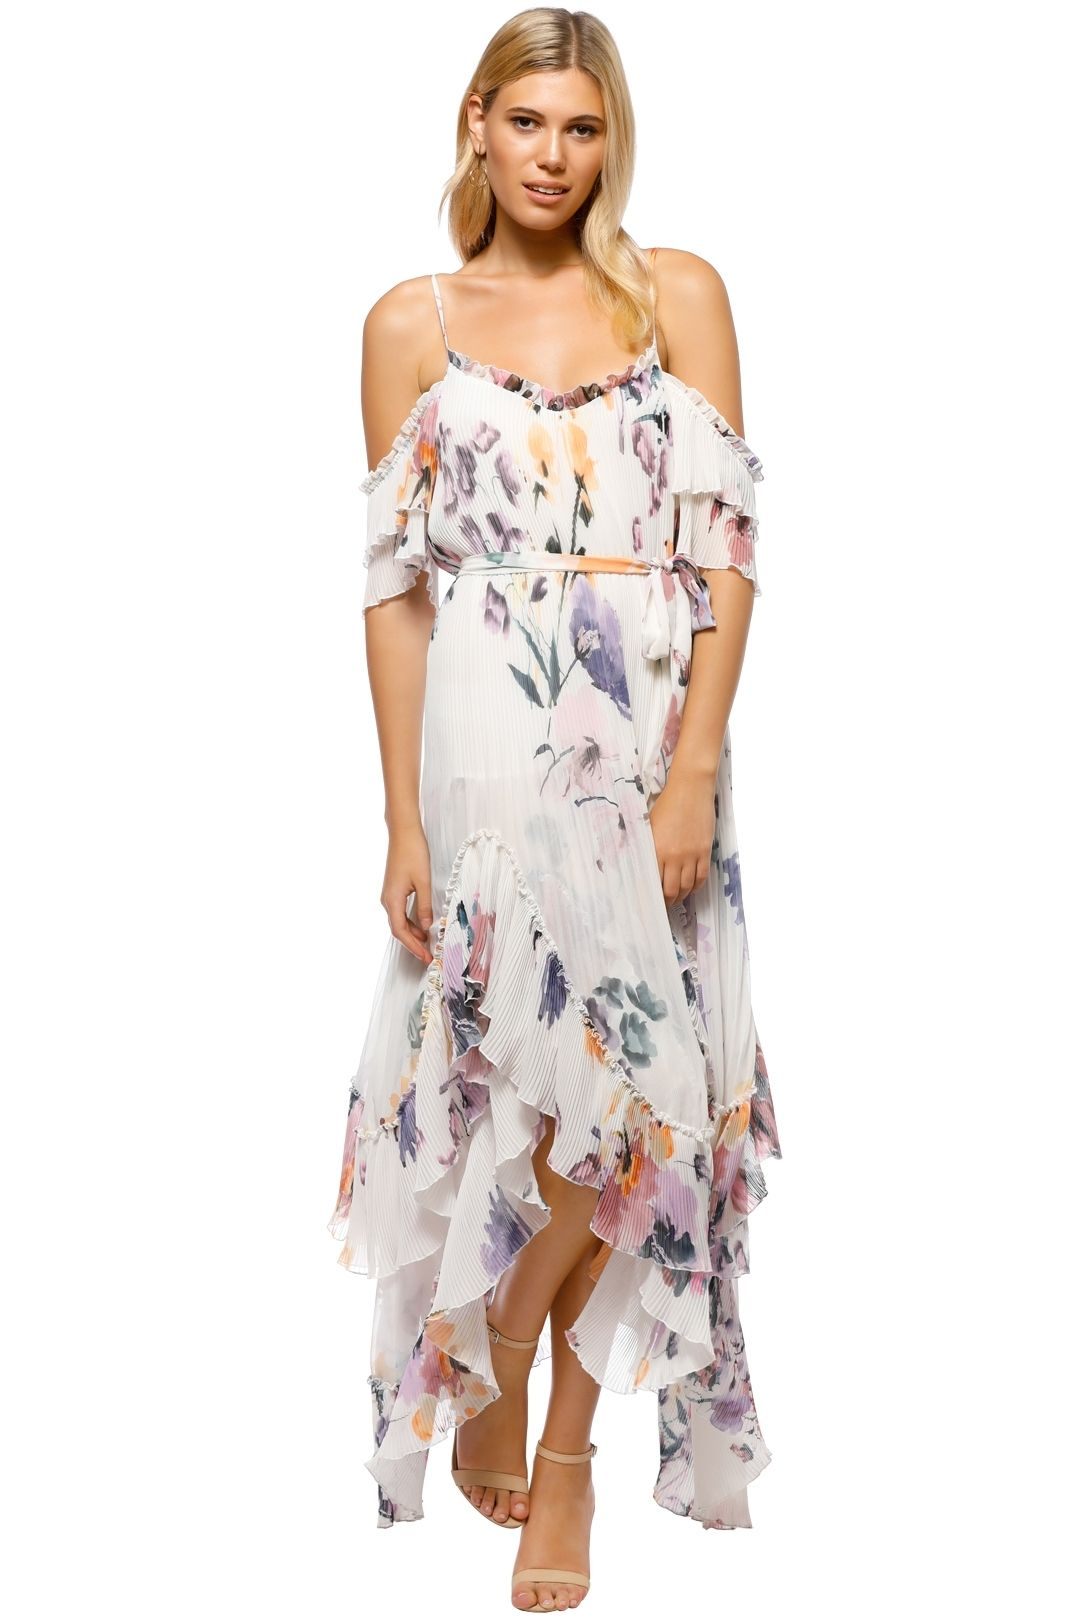 We Are Kindred - Catarina Pleat Maxi Dress - White Floral - Front